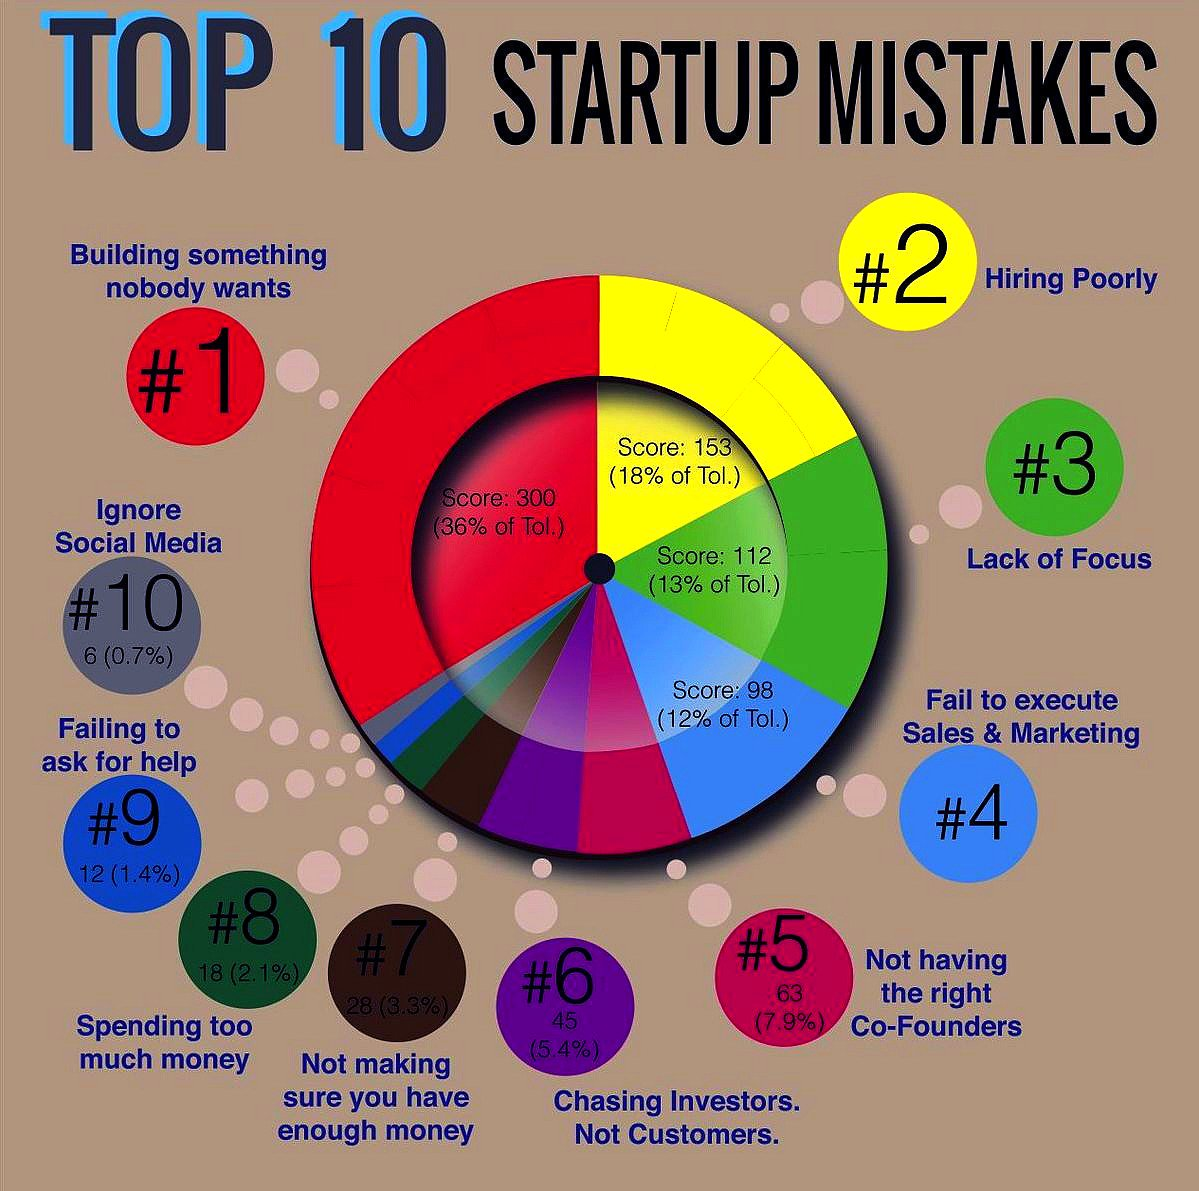 The Top 10 #Startups Mistakes [Infographic]  #Business #Startup #Entrepreneur #ContentMarketing #DigitalMarketing #Abhiseo <br>http://pic.twitter.com/jXle0dnOZq